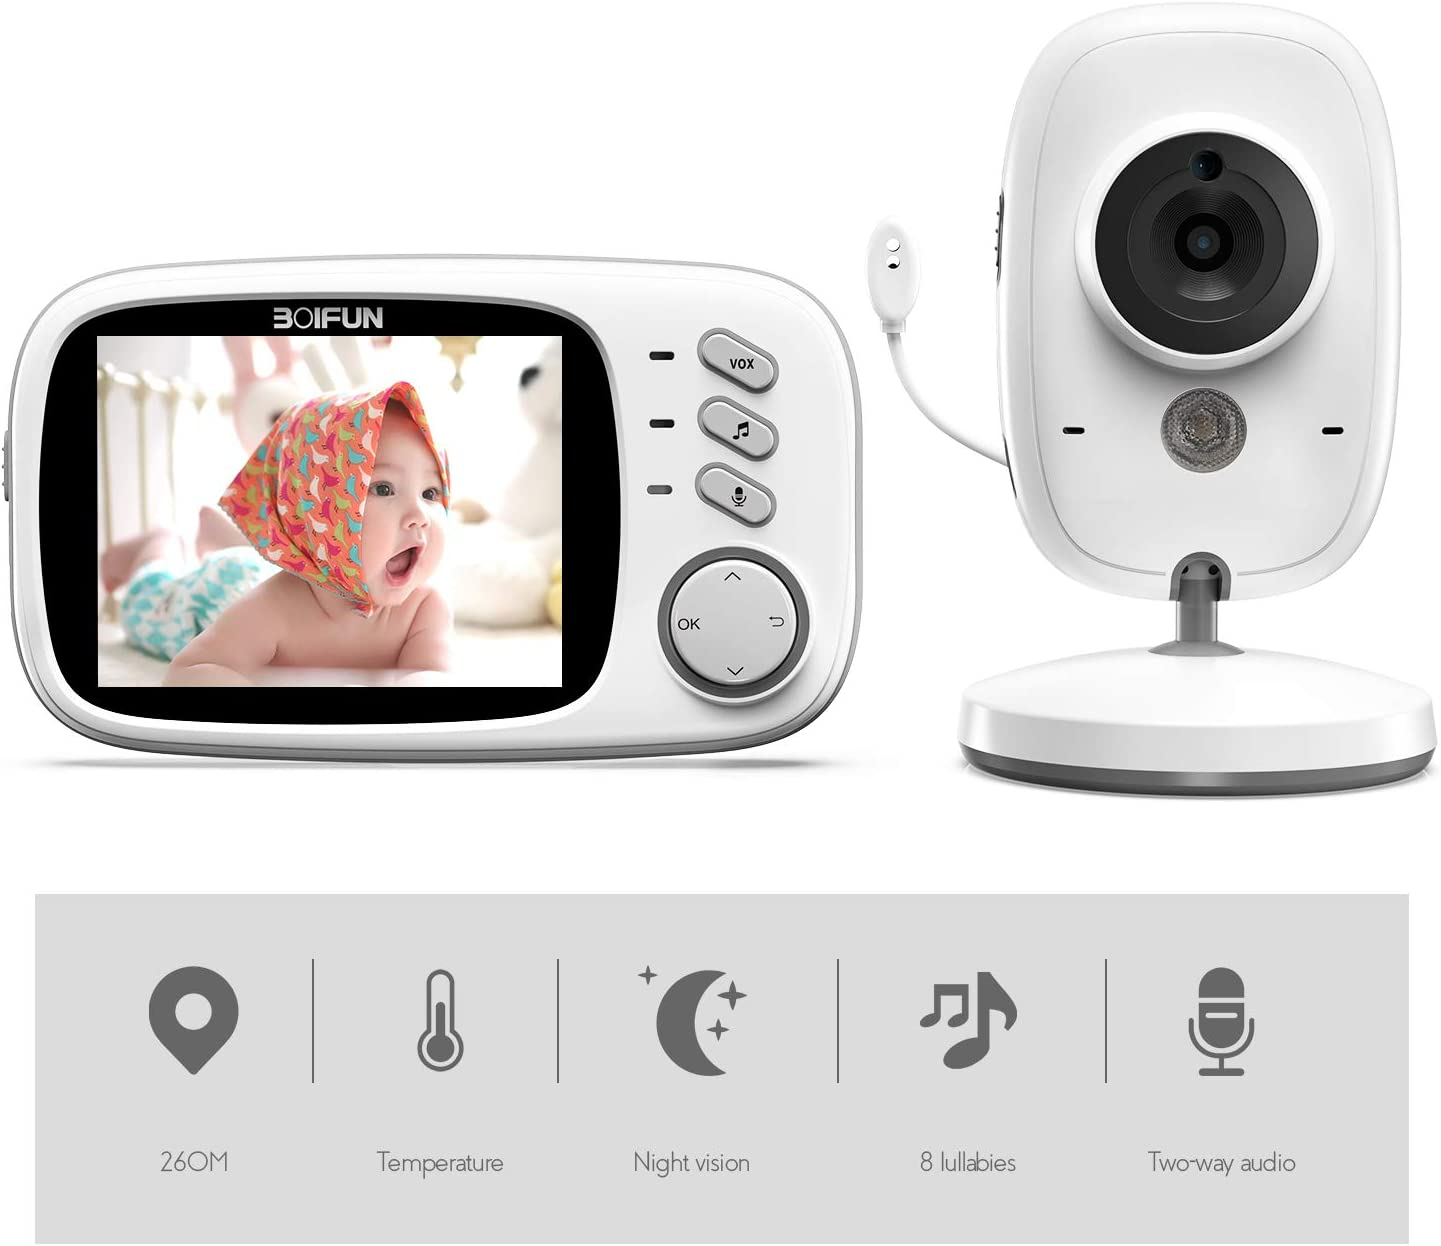 Baby Monitor, BOIFUN 3.2 Baby Video Monitor with Camera and Audio LCD Screen 750mAh Rechargeable Battery Support VOX Night Vision Temperature Monitoring Two-Way Talk 8 lullabies for Baby Elder Pet